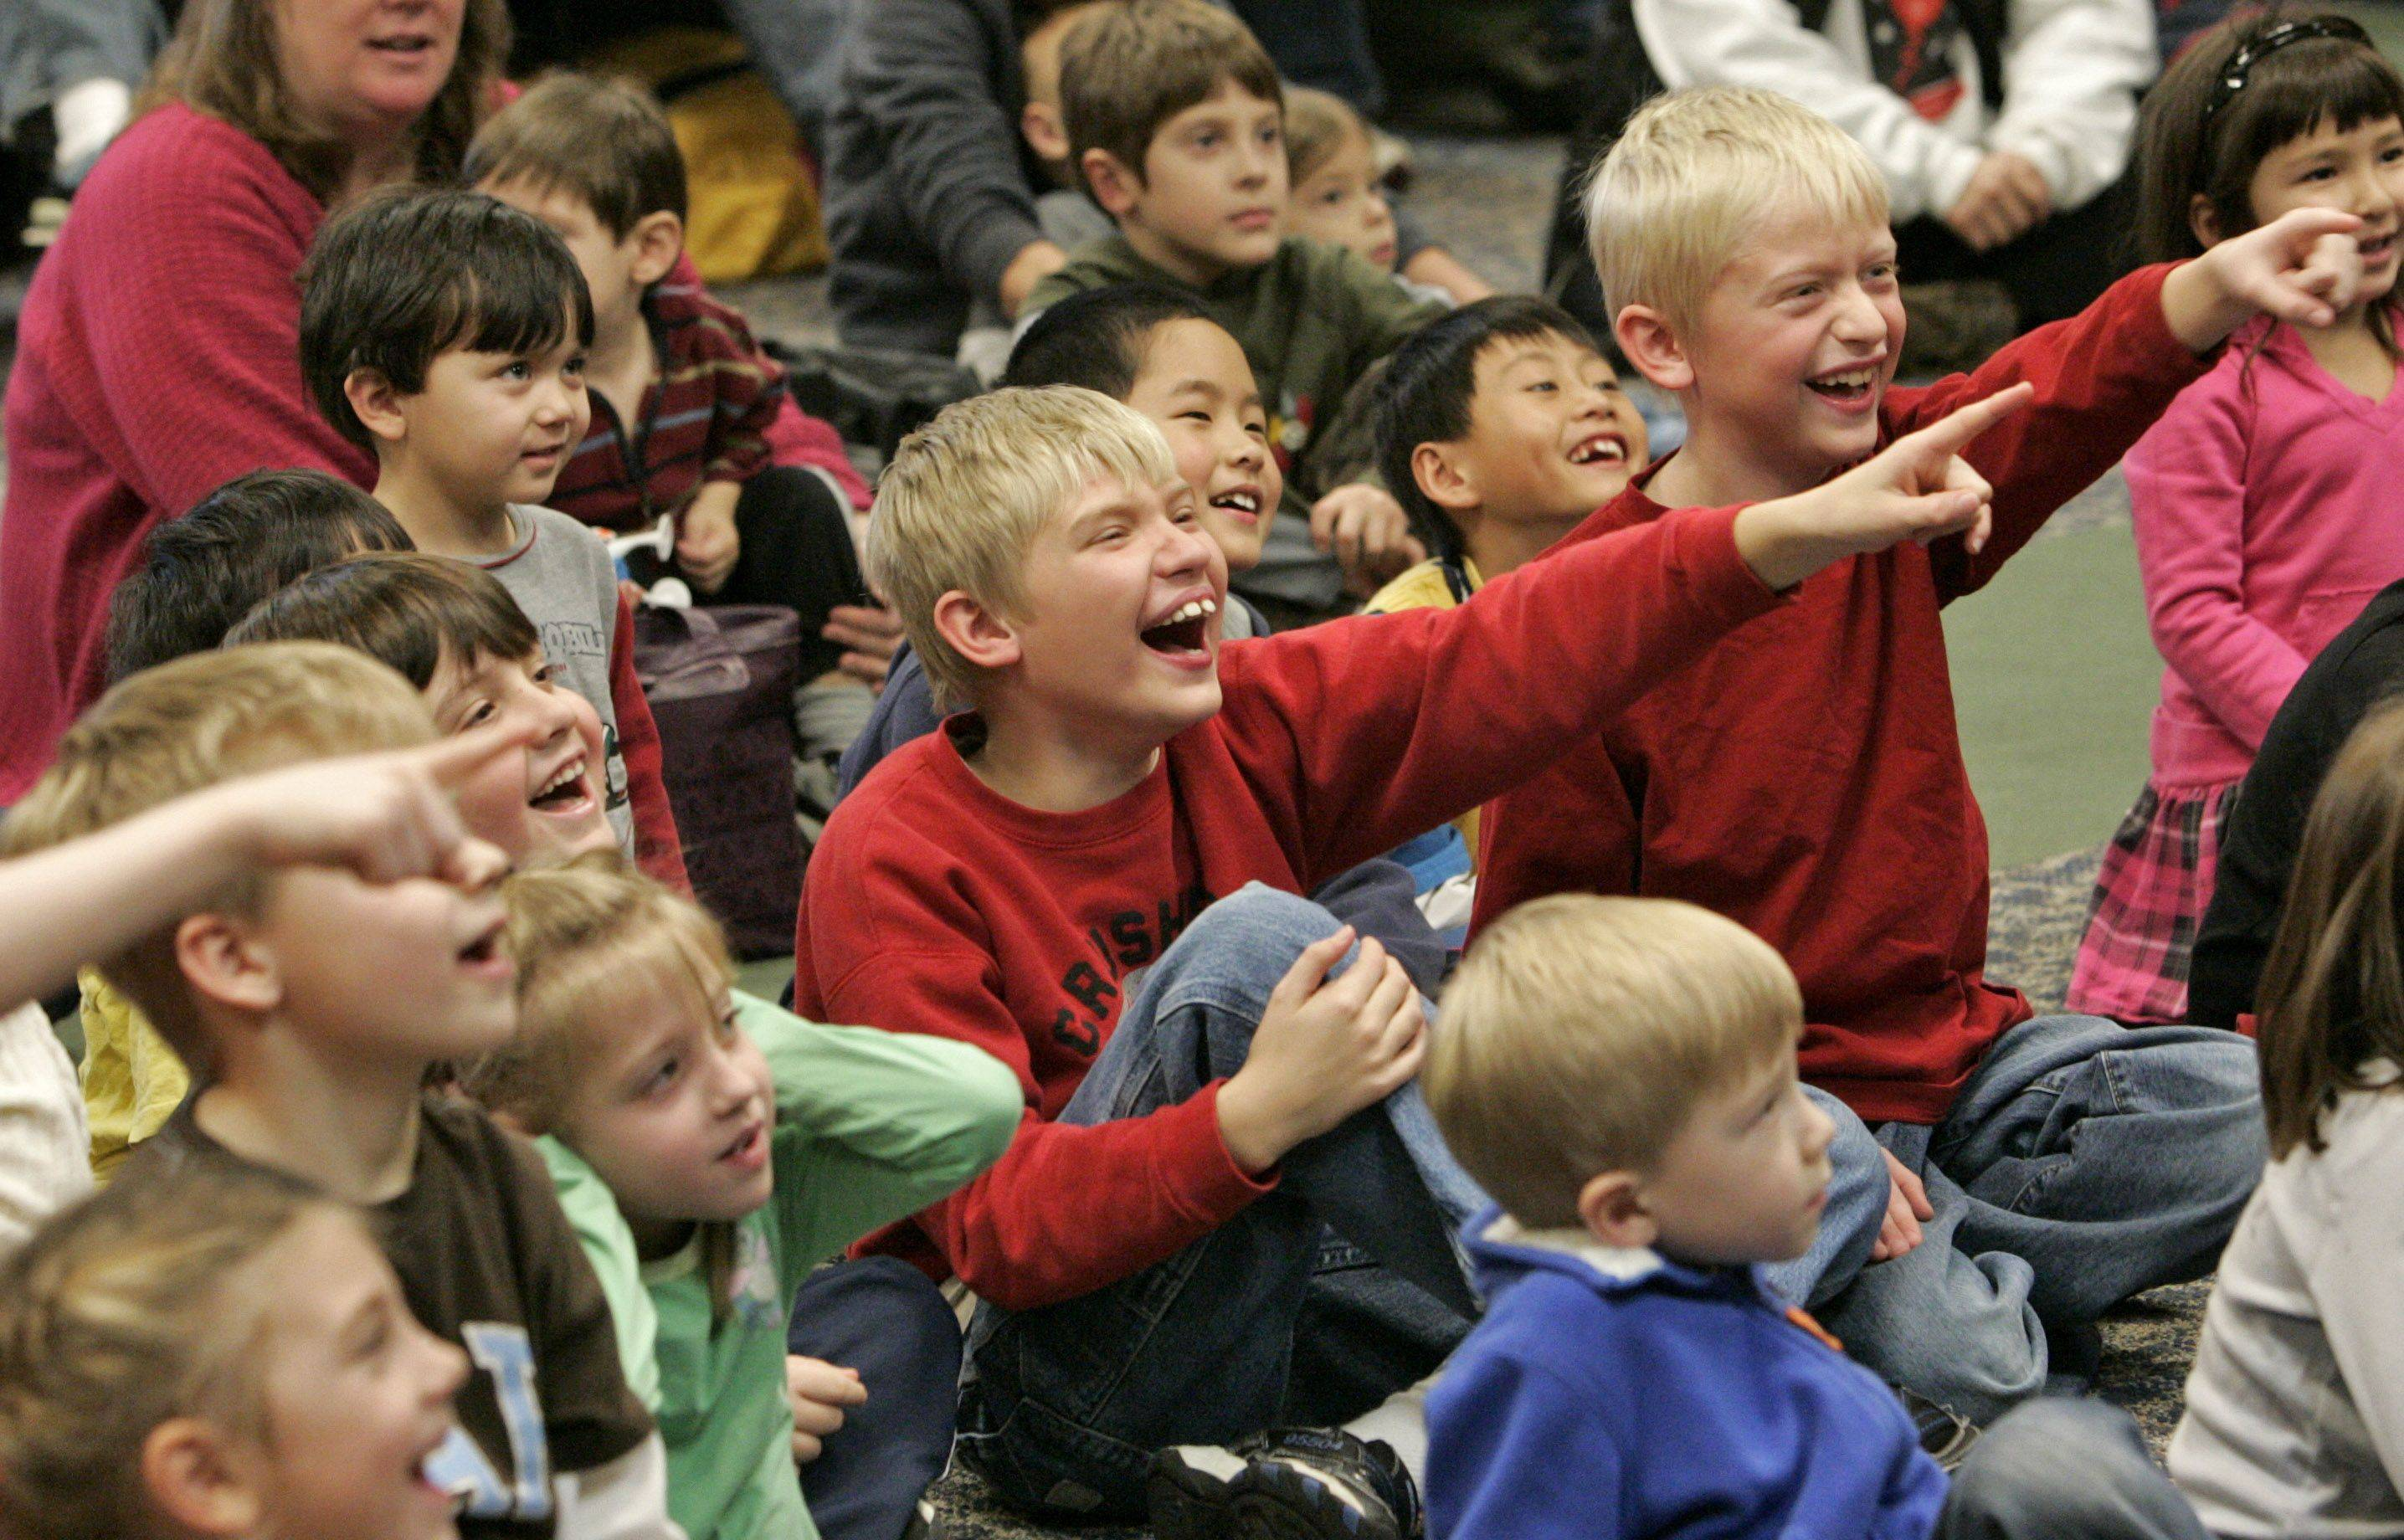 Kids react during a show by magician Dennis DeBondt of Chicago at Fremont Public Library in Mundelein Thursday.